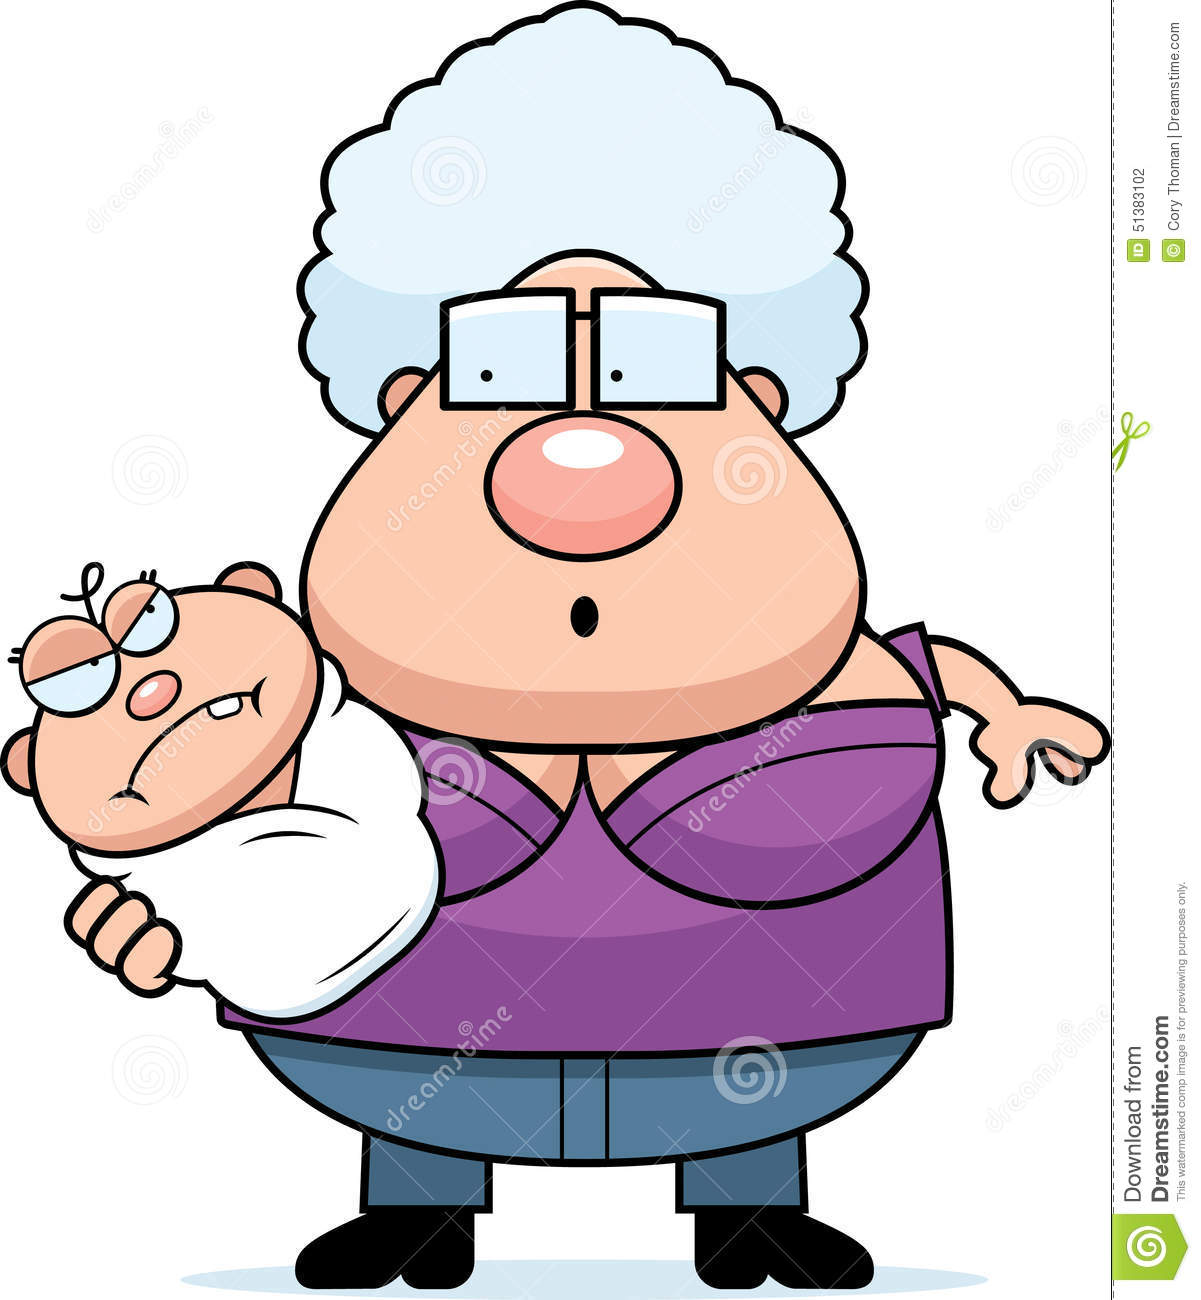 Cartoon Grandma With Angry Baby Stock Vector - Illustration of parent, clipart: 51383102